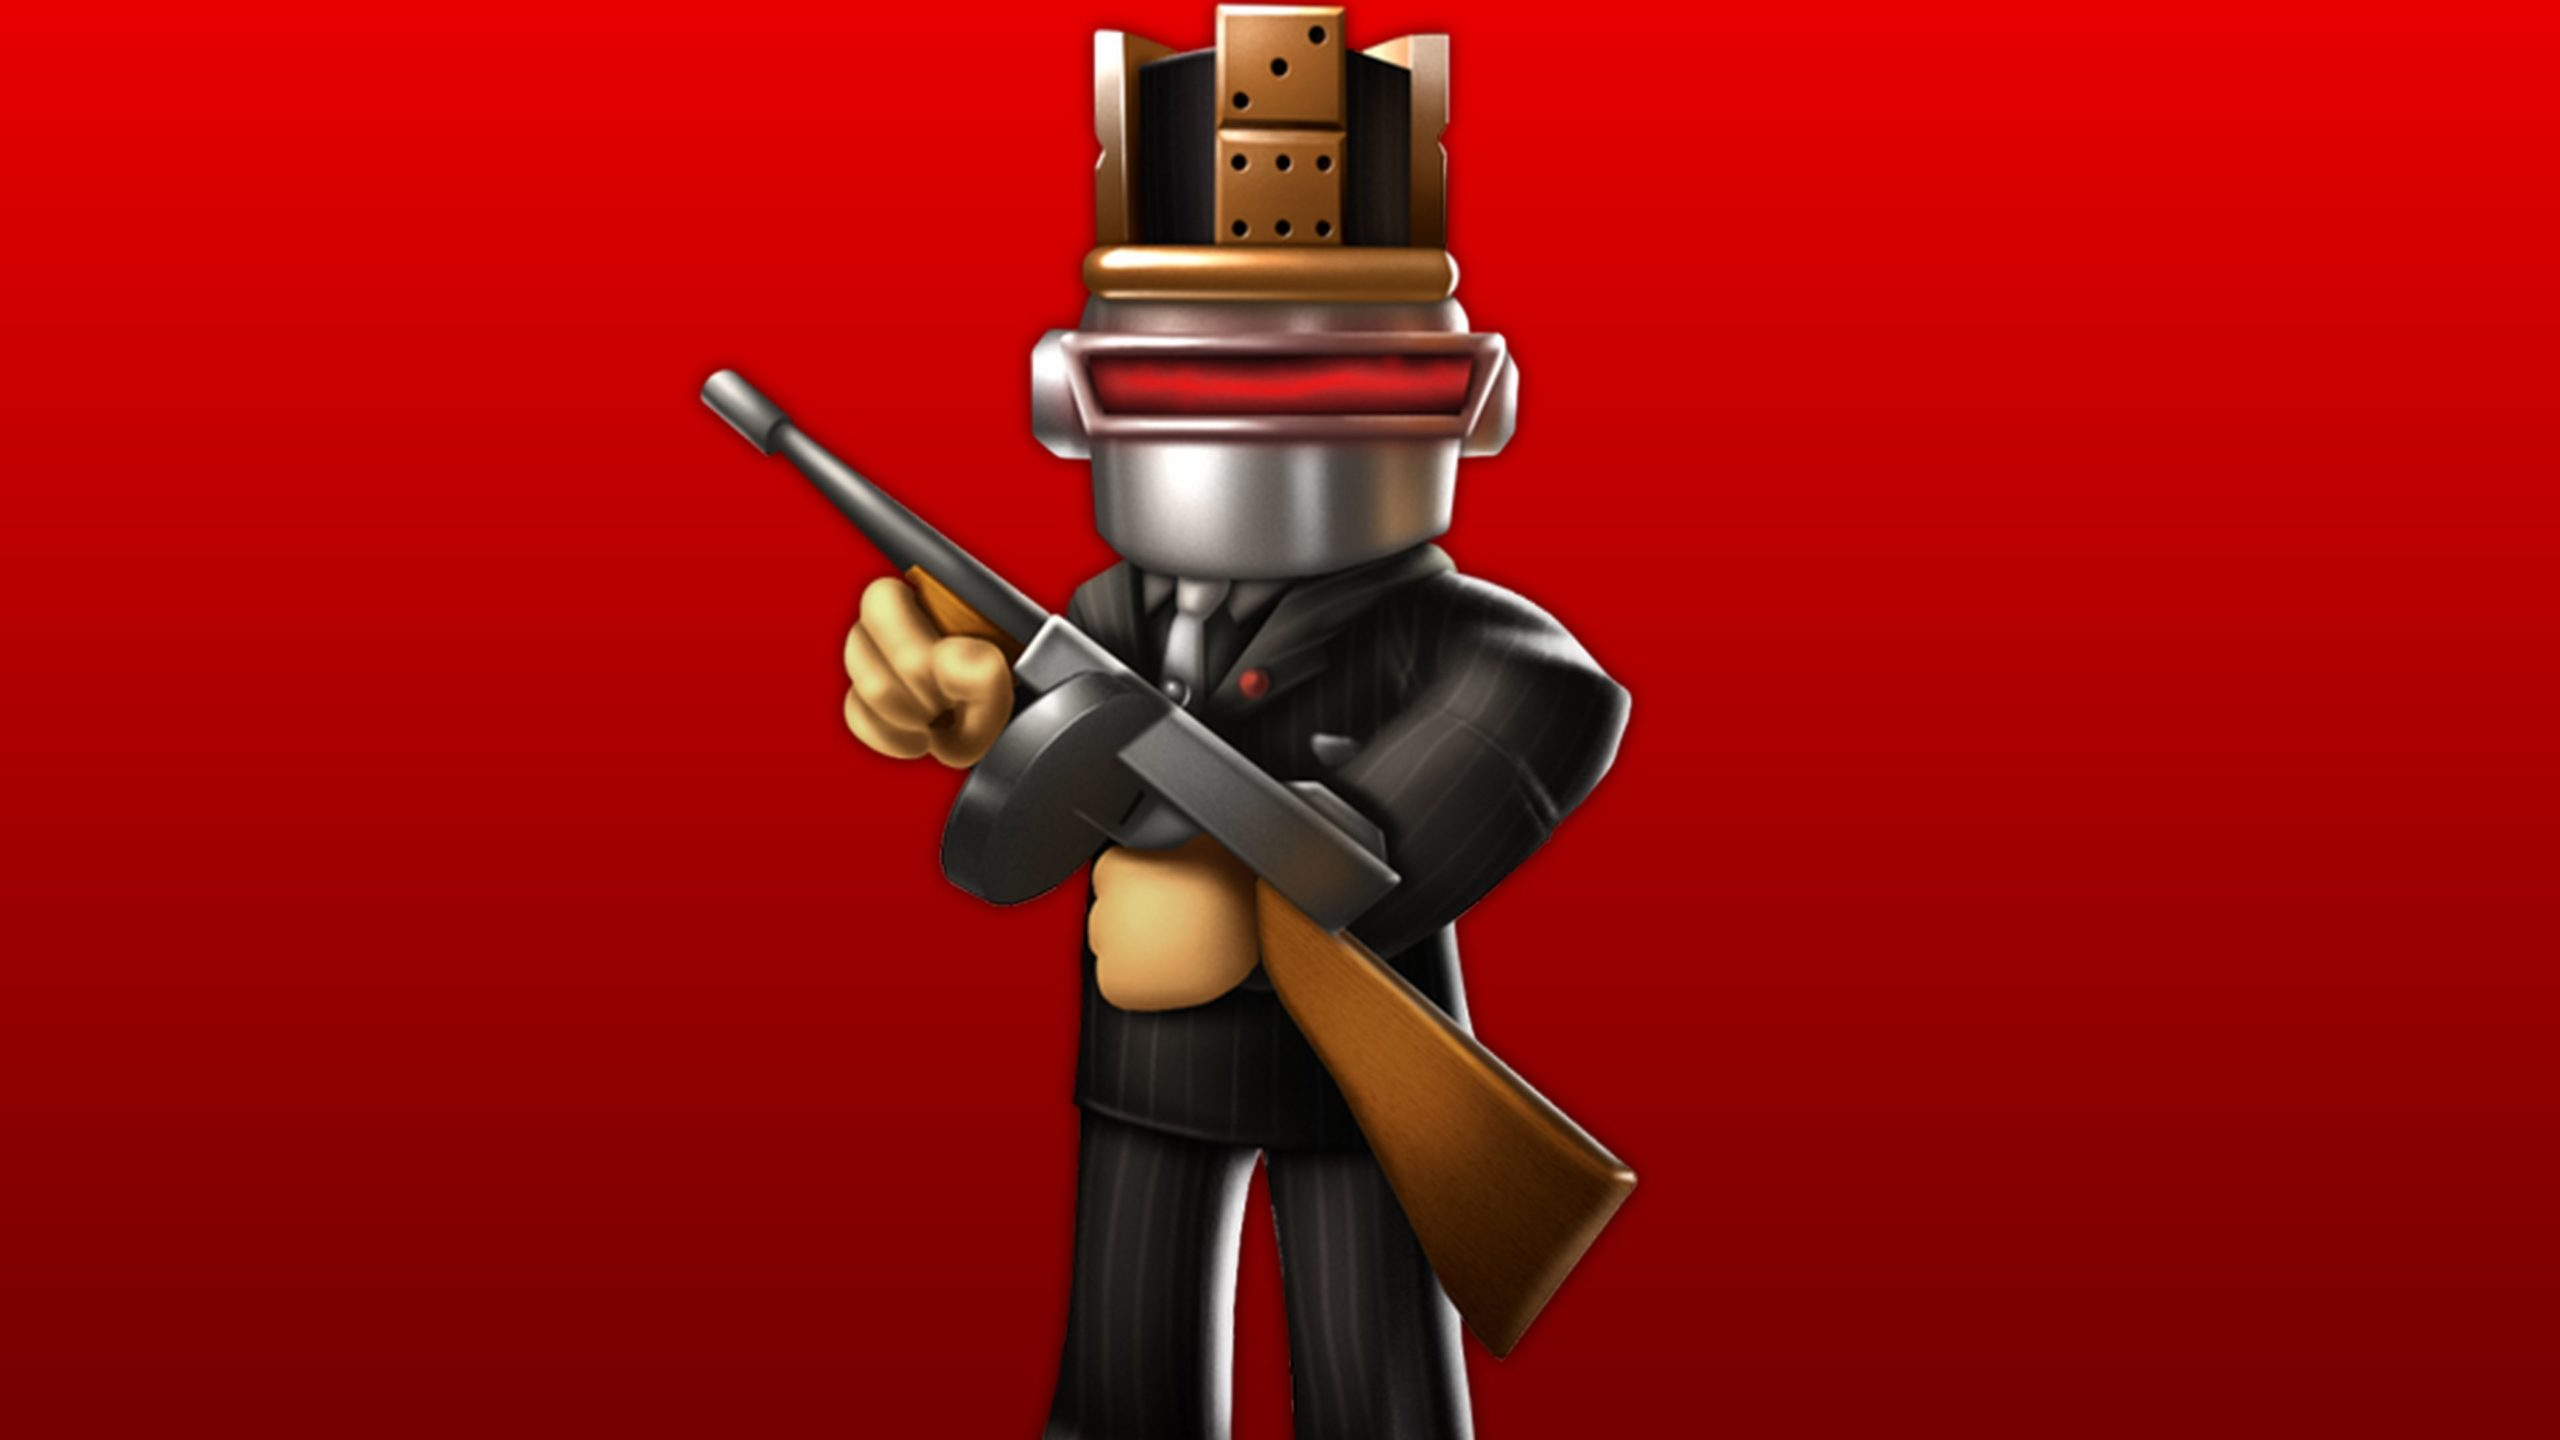 roblox desktop wallpaper